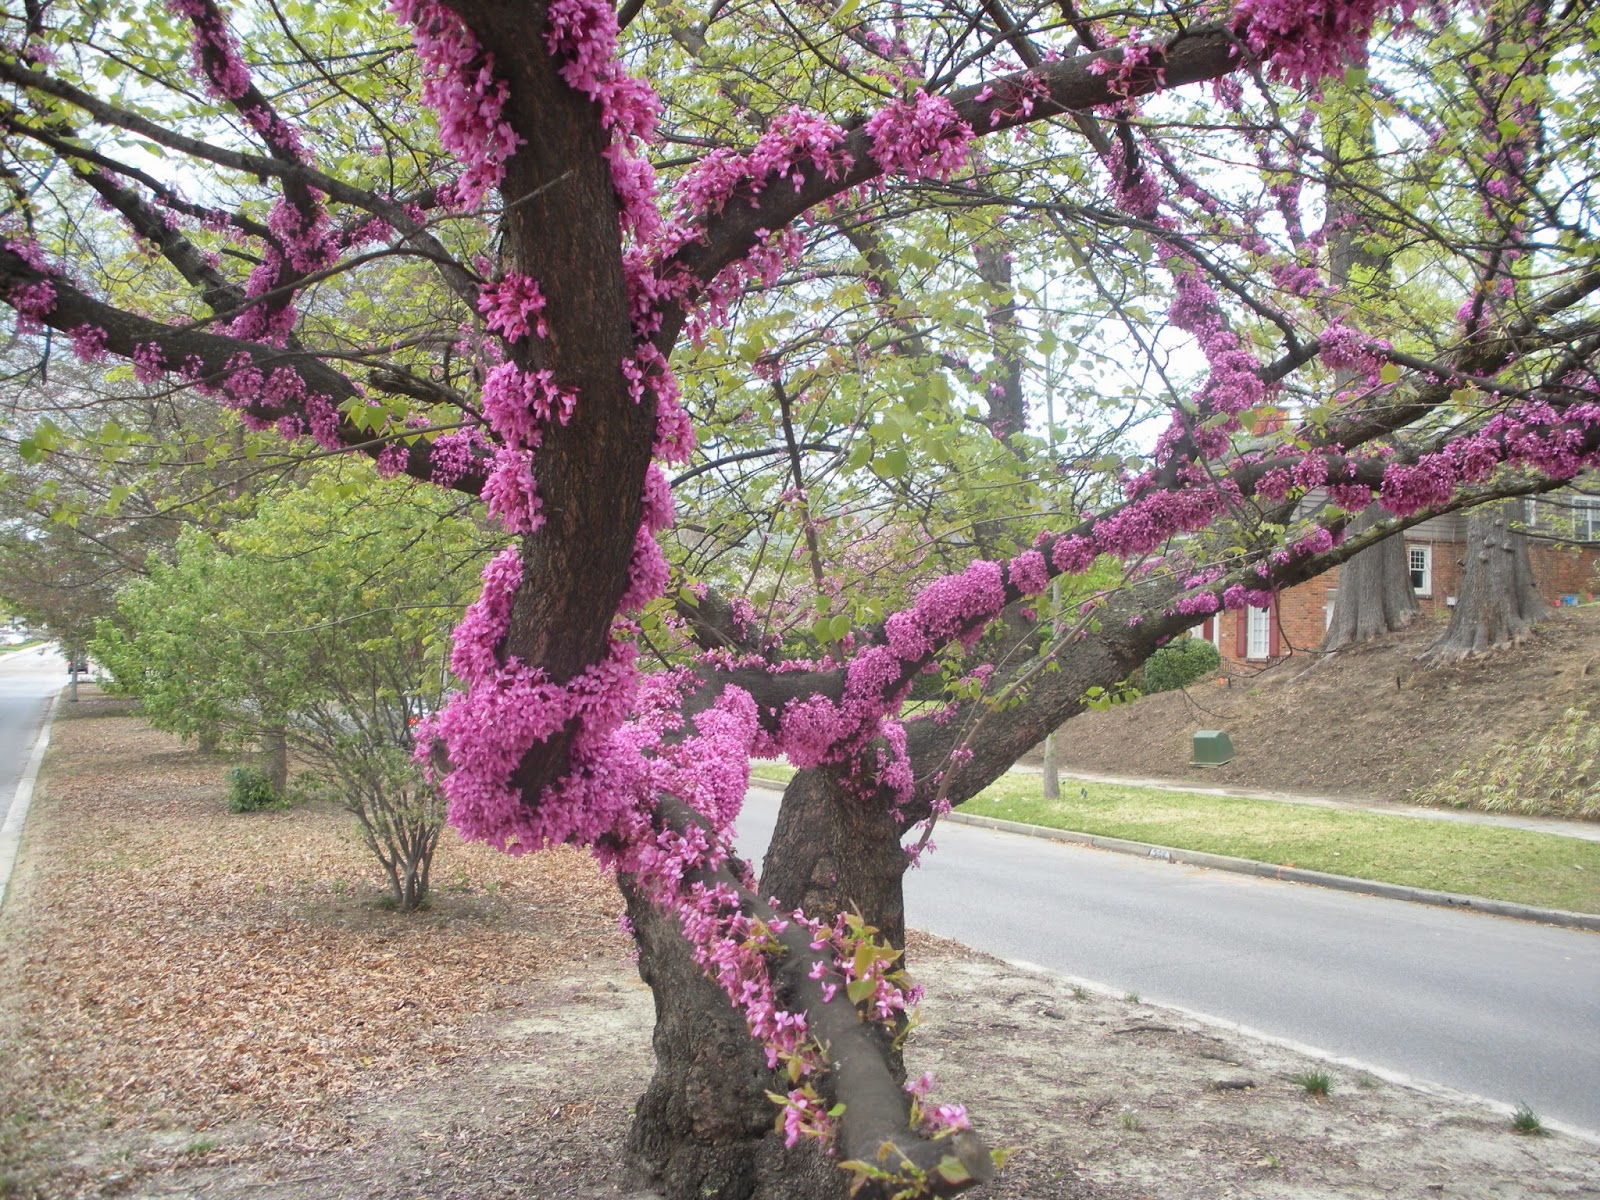 Memphis trees april comes to memphis a remarkable redbud blooming heavily along the trunk april 13 2014 palm sunday mightylinksfo